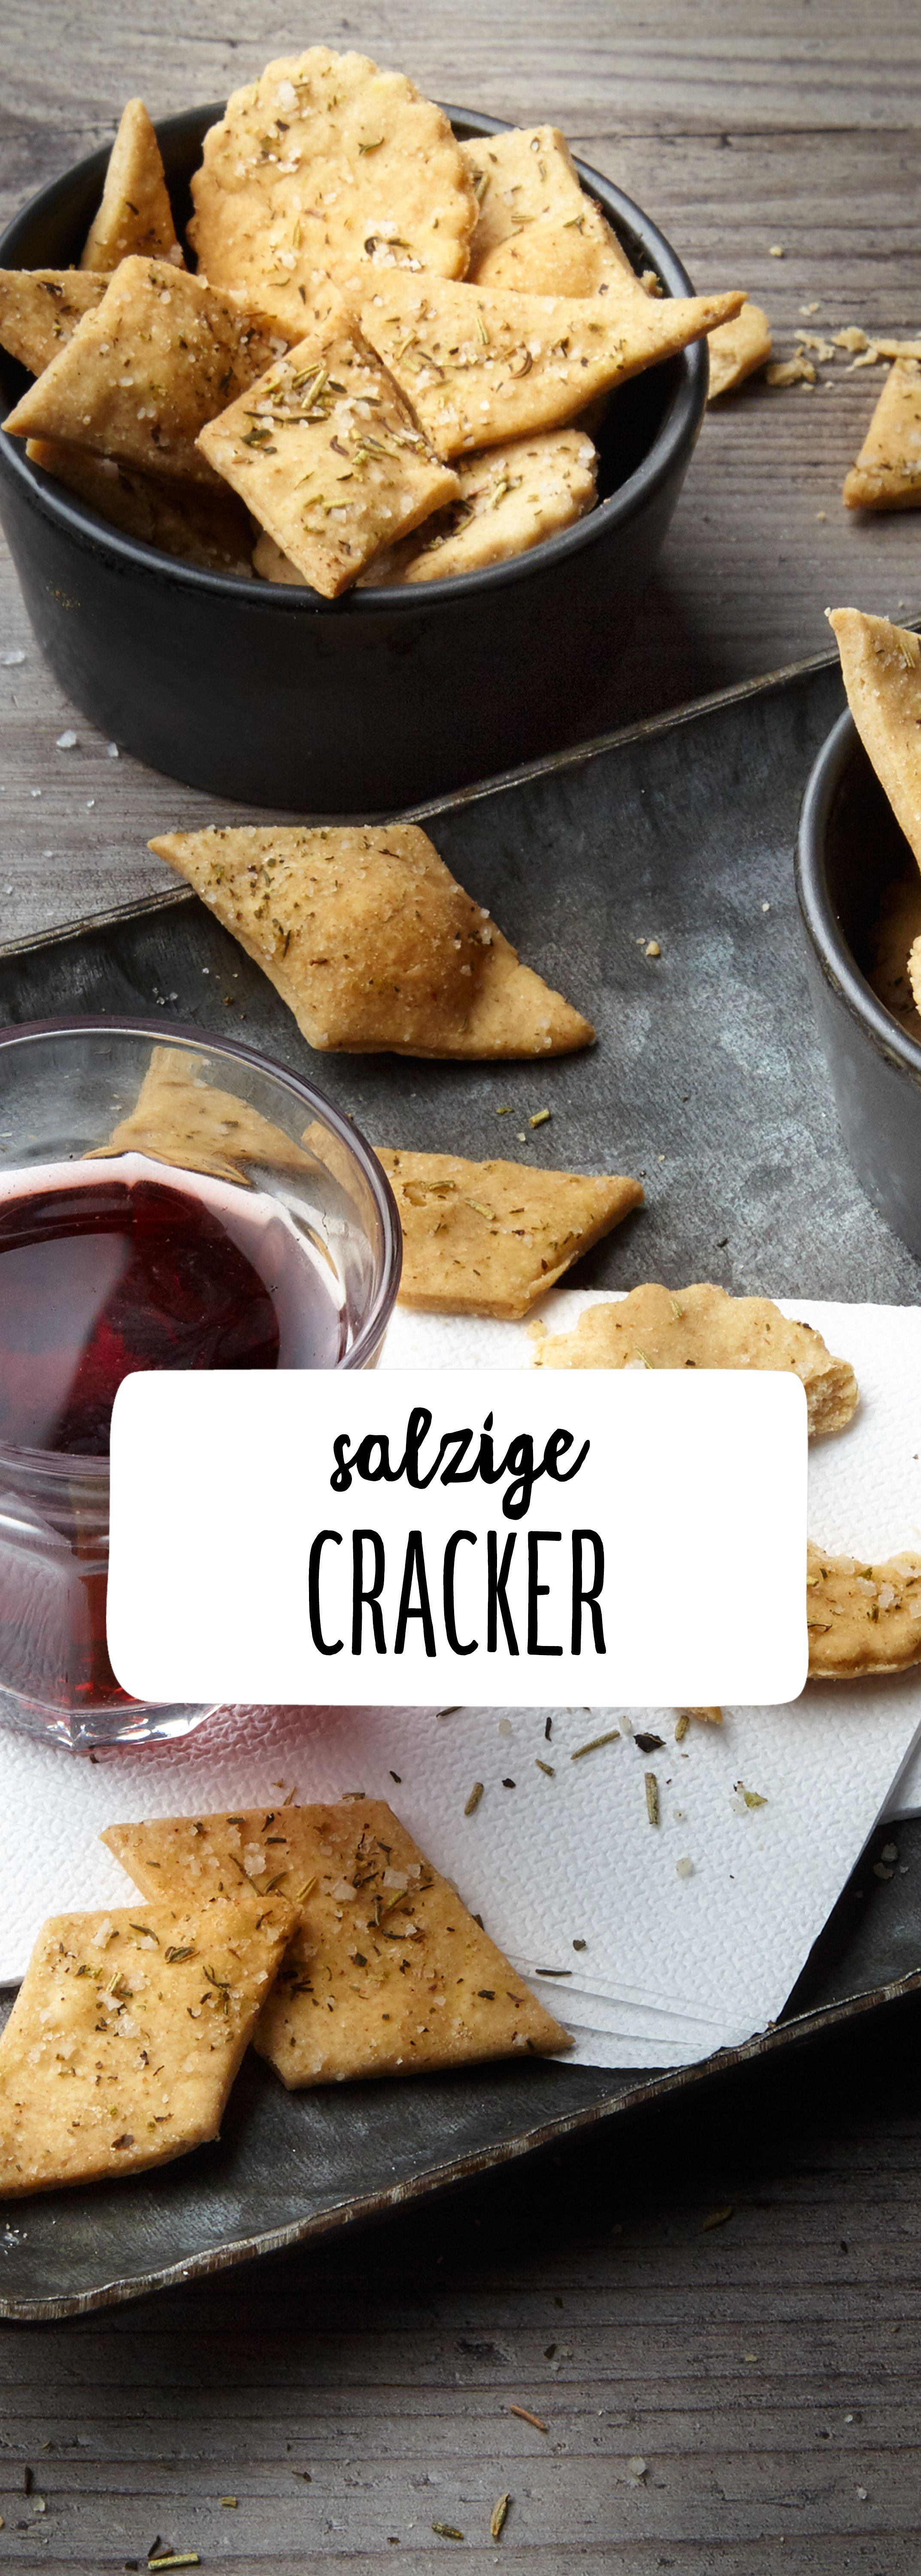 Salzige Cracker #fingerfood #snacks #salz #friendsgivingfood